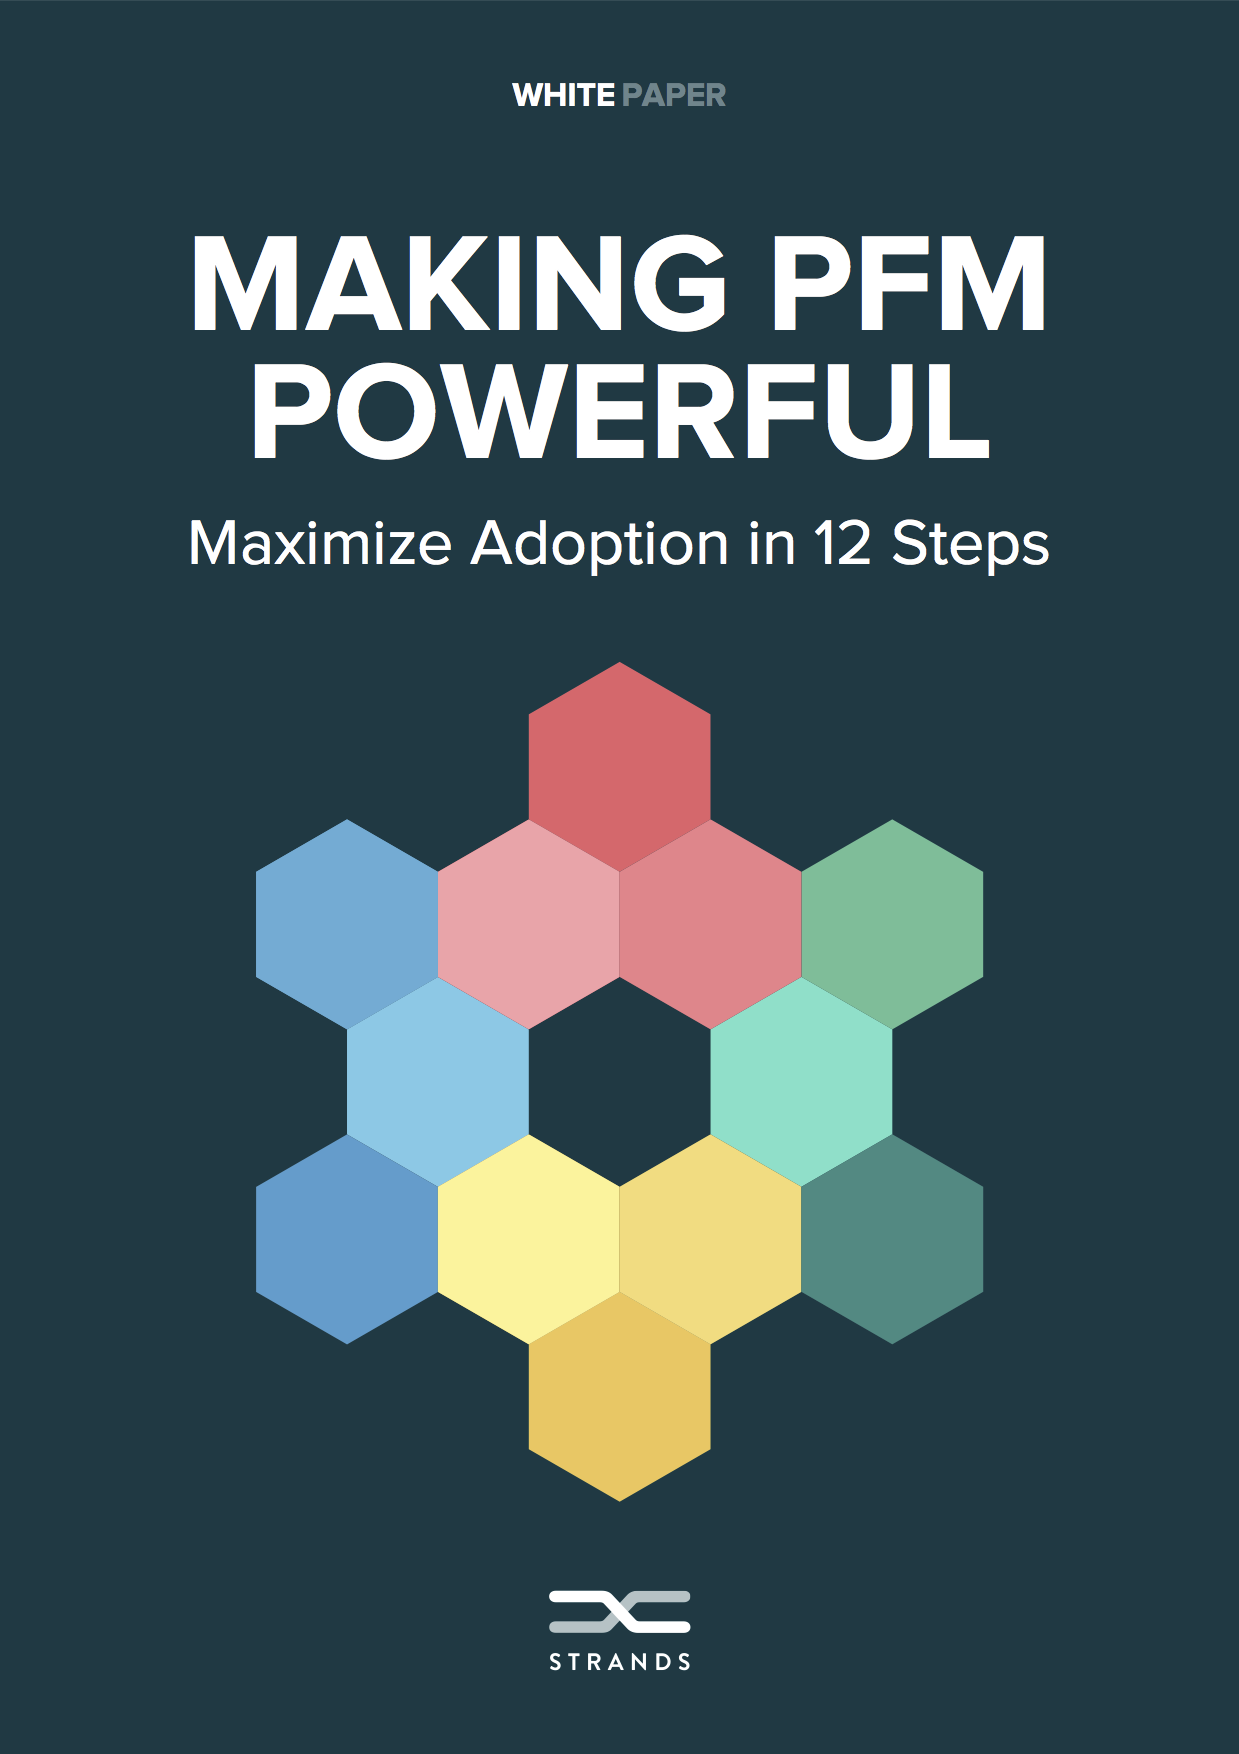 White_Paper__Making_PFM_Powerful_cover_image.png